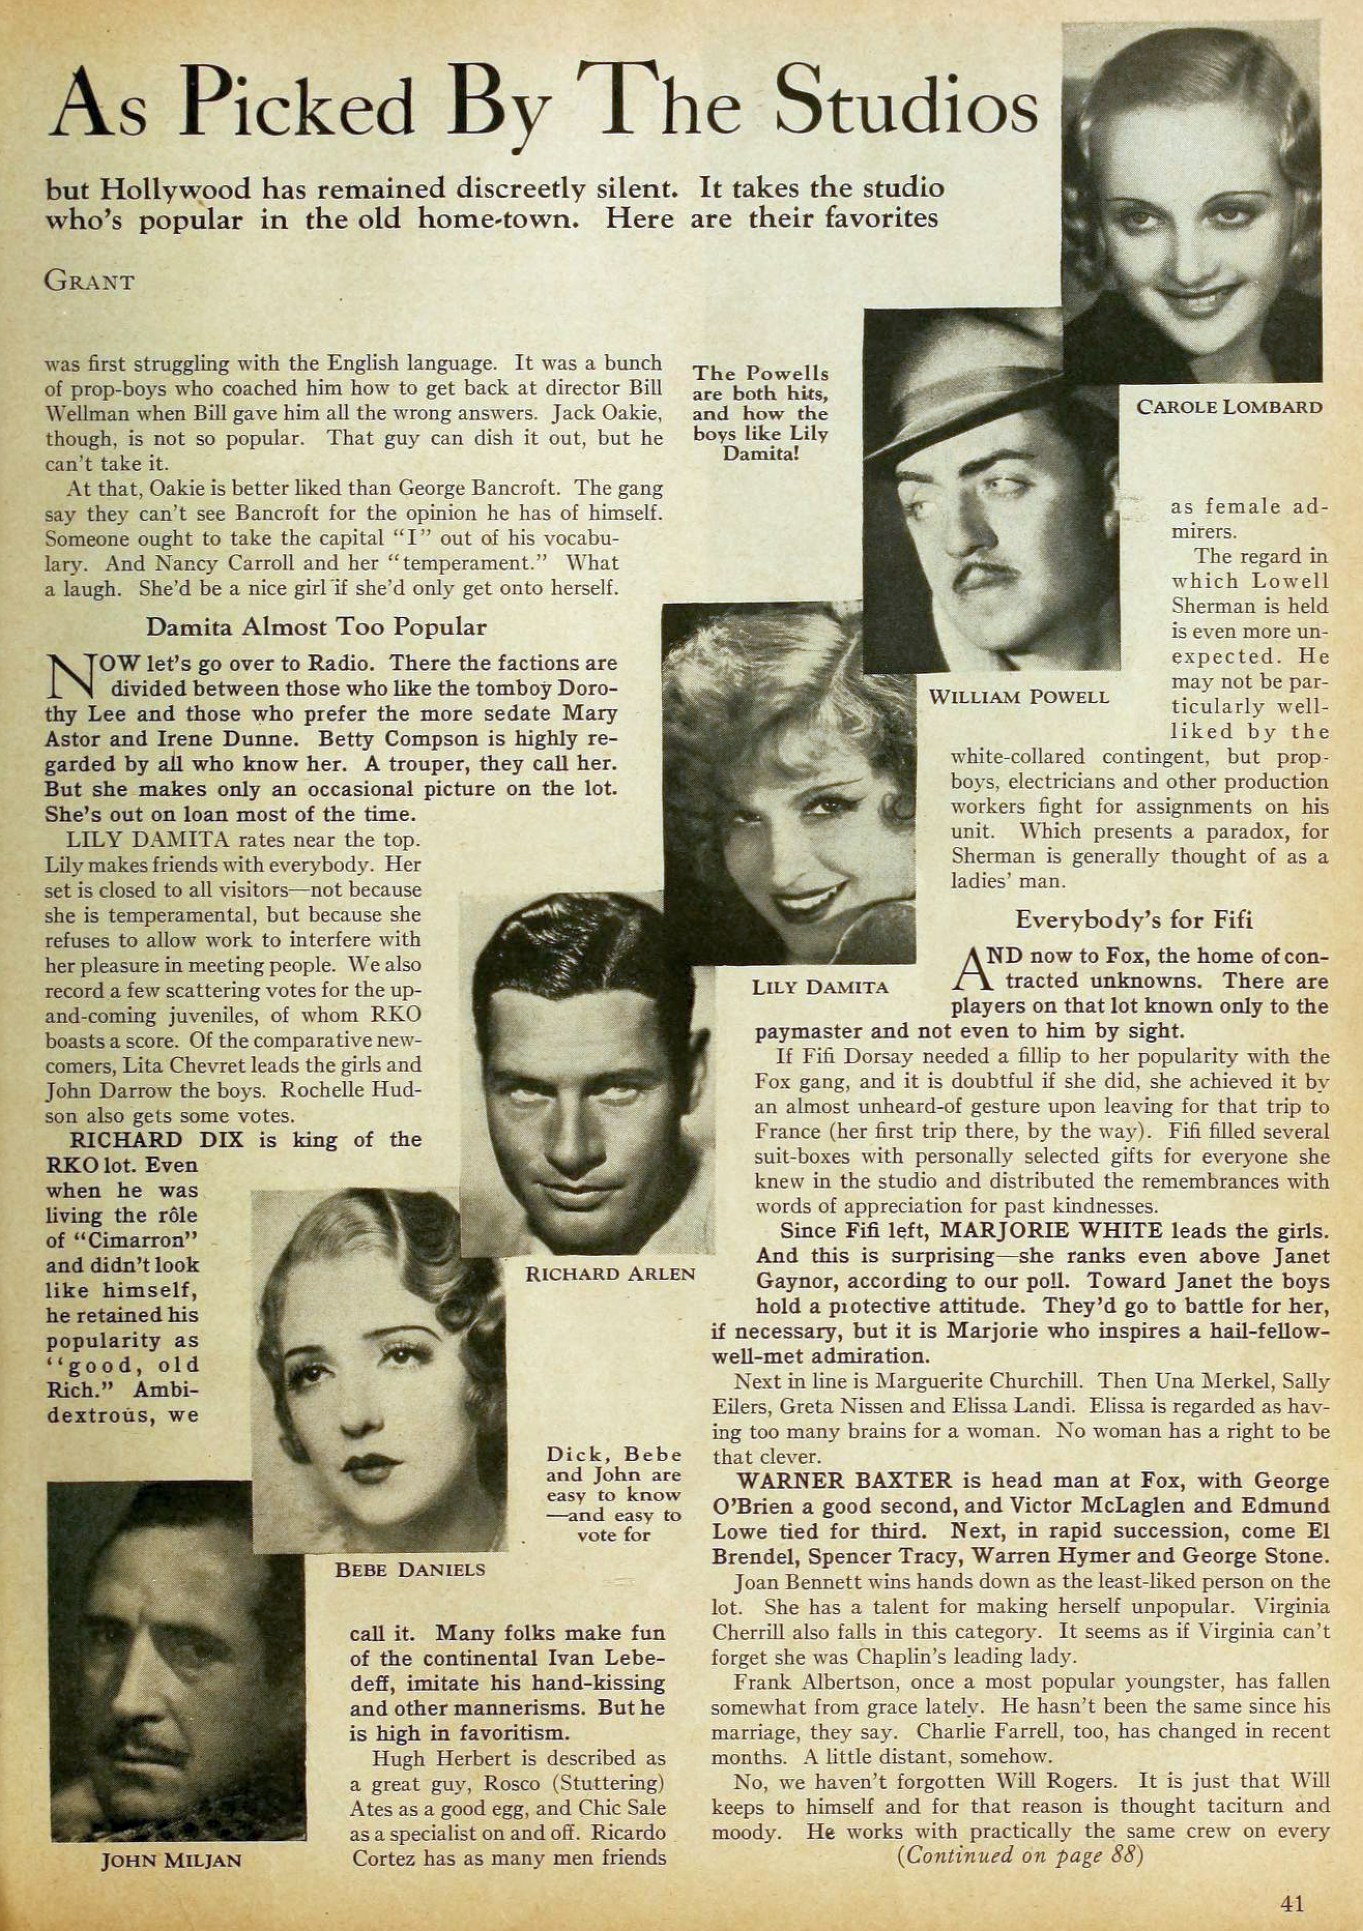 carole lombard motion picture october 1931 popular 01a